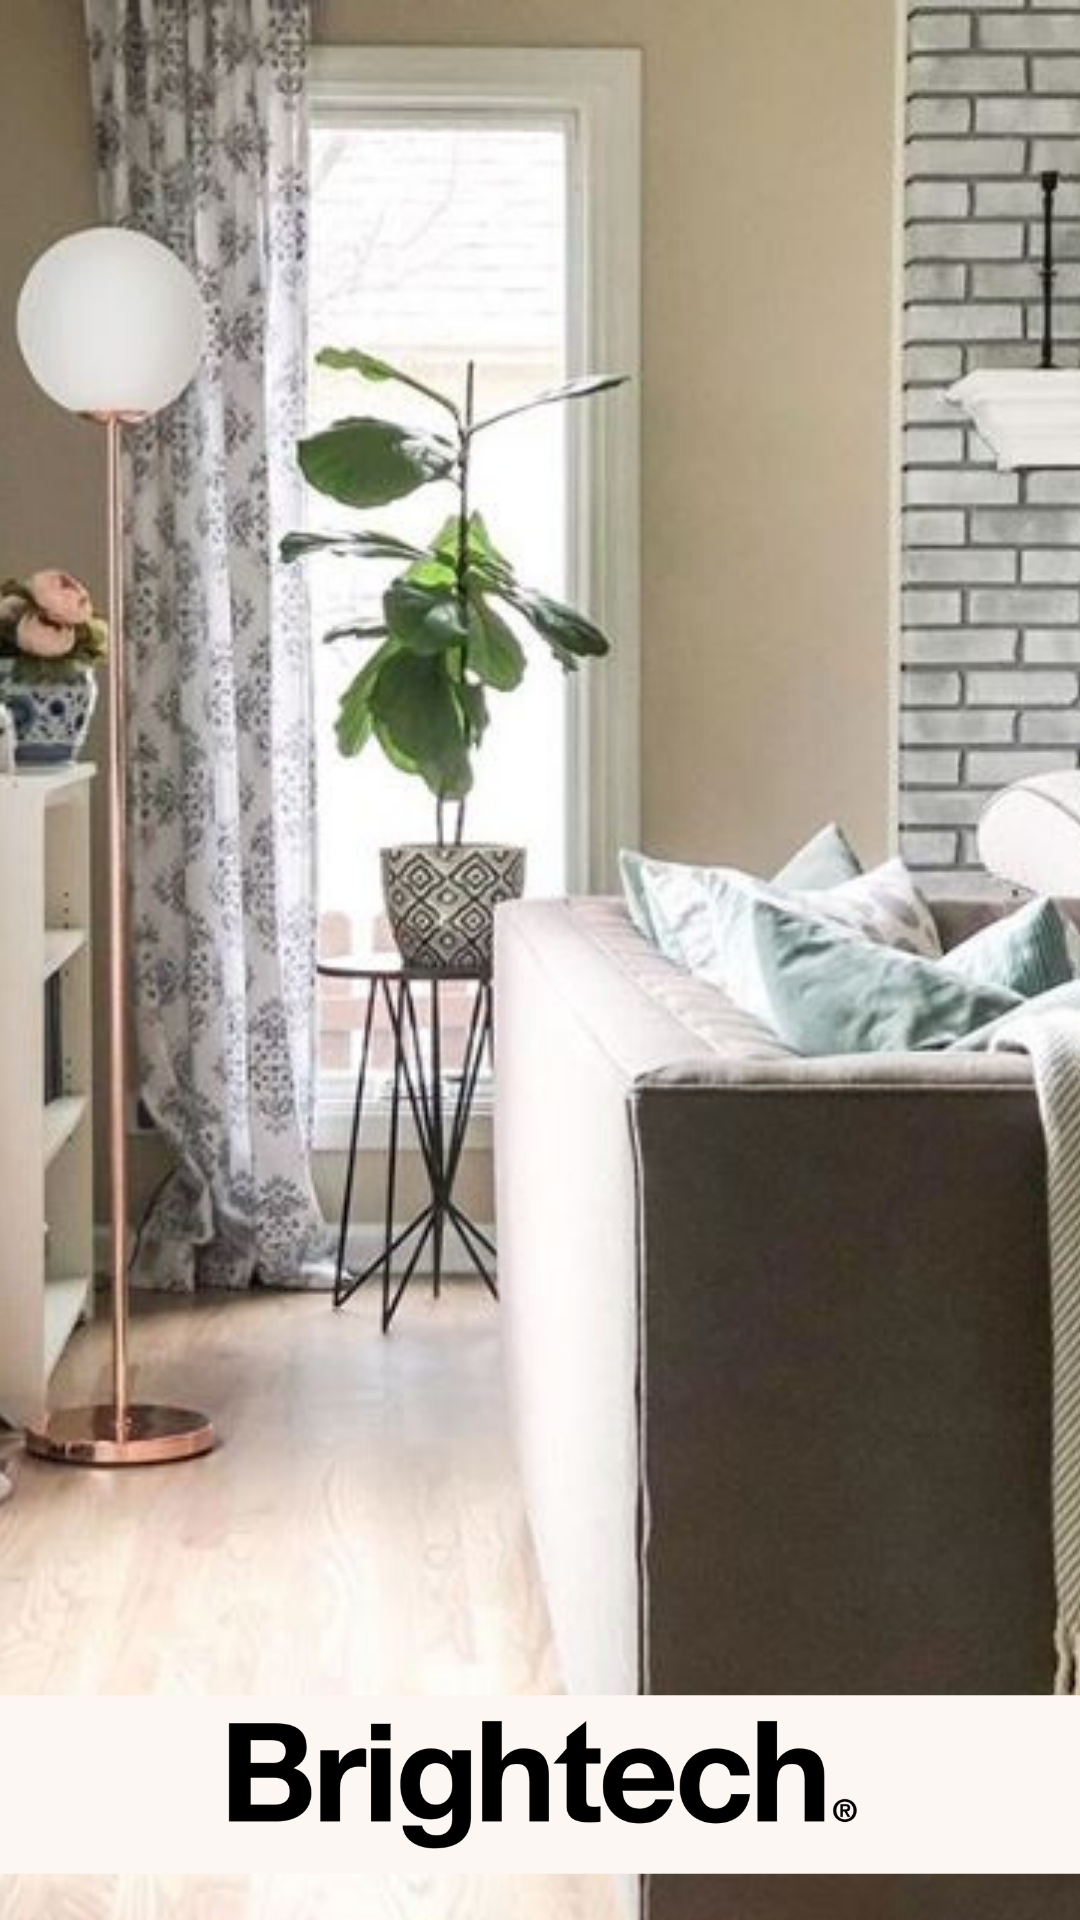 When the indoor plant and stylish lamp are really all you need to create the perfect corner...⠀🍃 ⠀⁠⠀⁠Thank you @ellenblisshome 💛💛💛⁠ Click now to order your floor lamp just in time for your spring decor refresh. #brightech #floorlamp #inspiringinteriors #interiordesign #brasslamp #livingroomdecor #rosegold